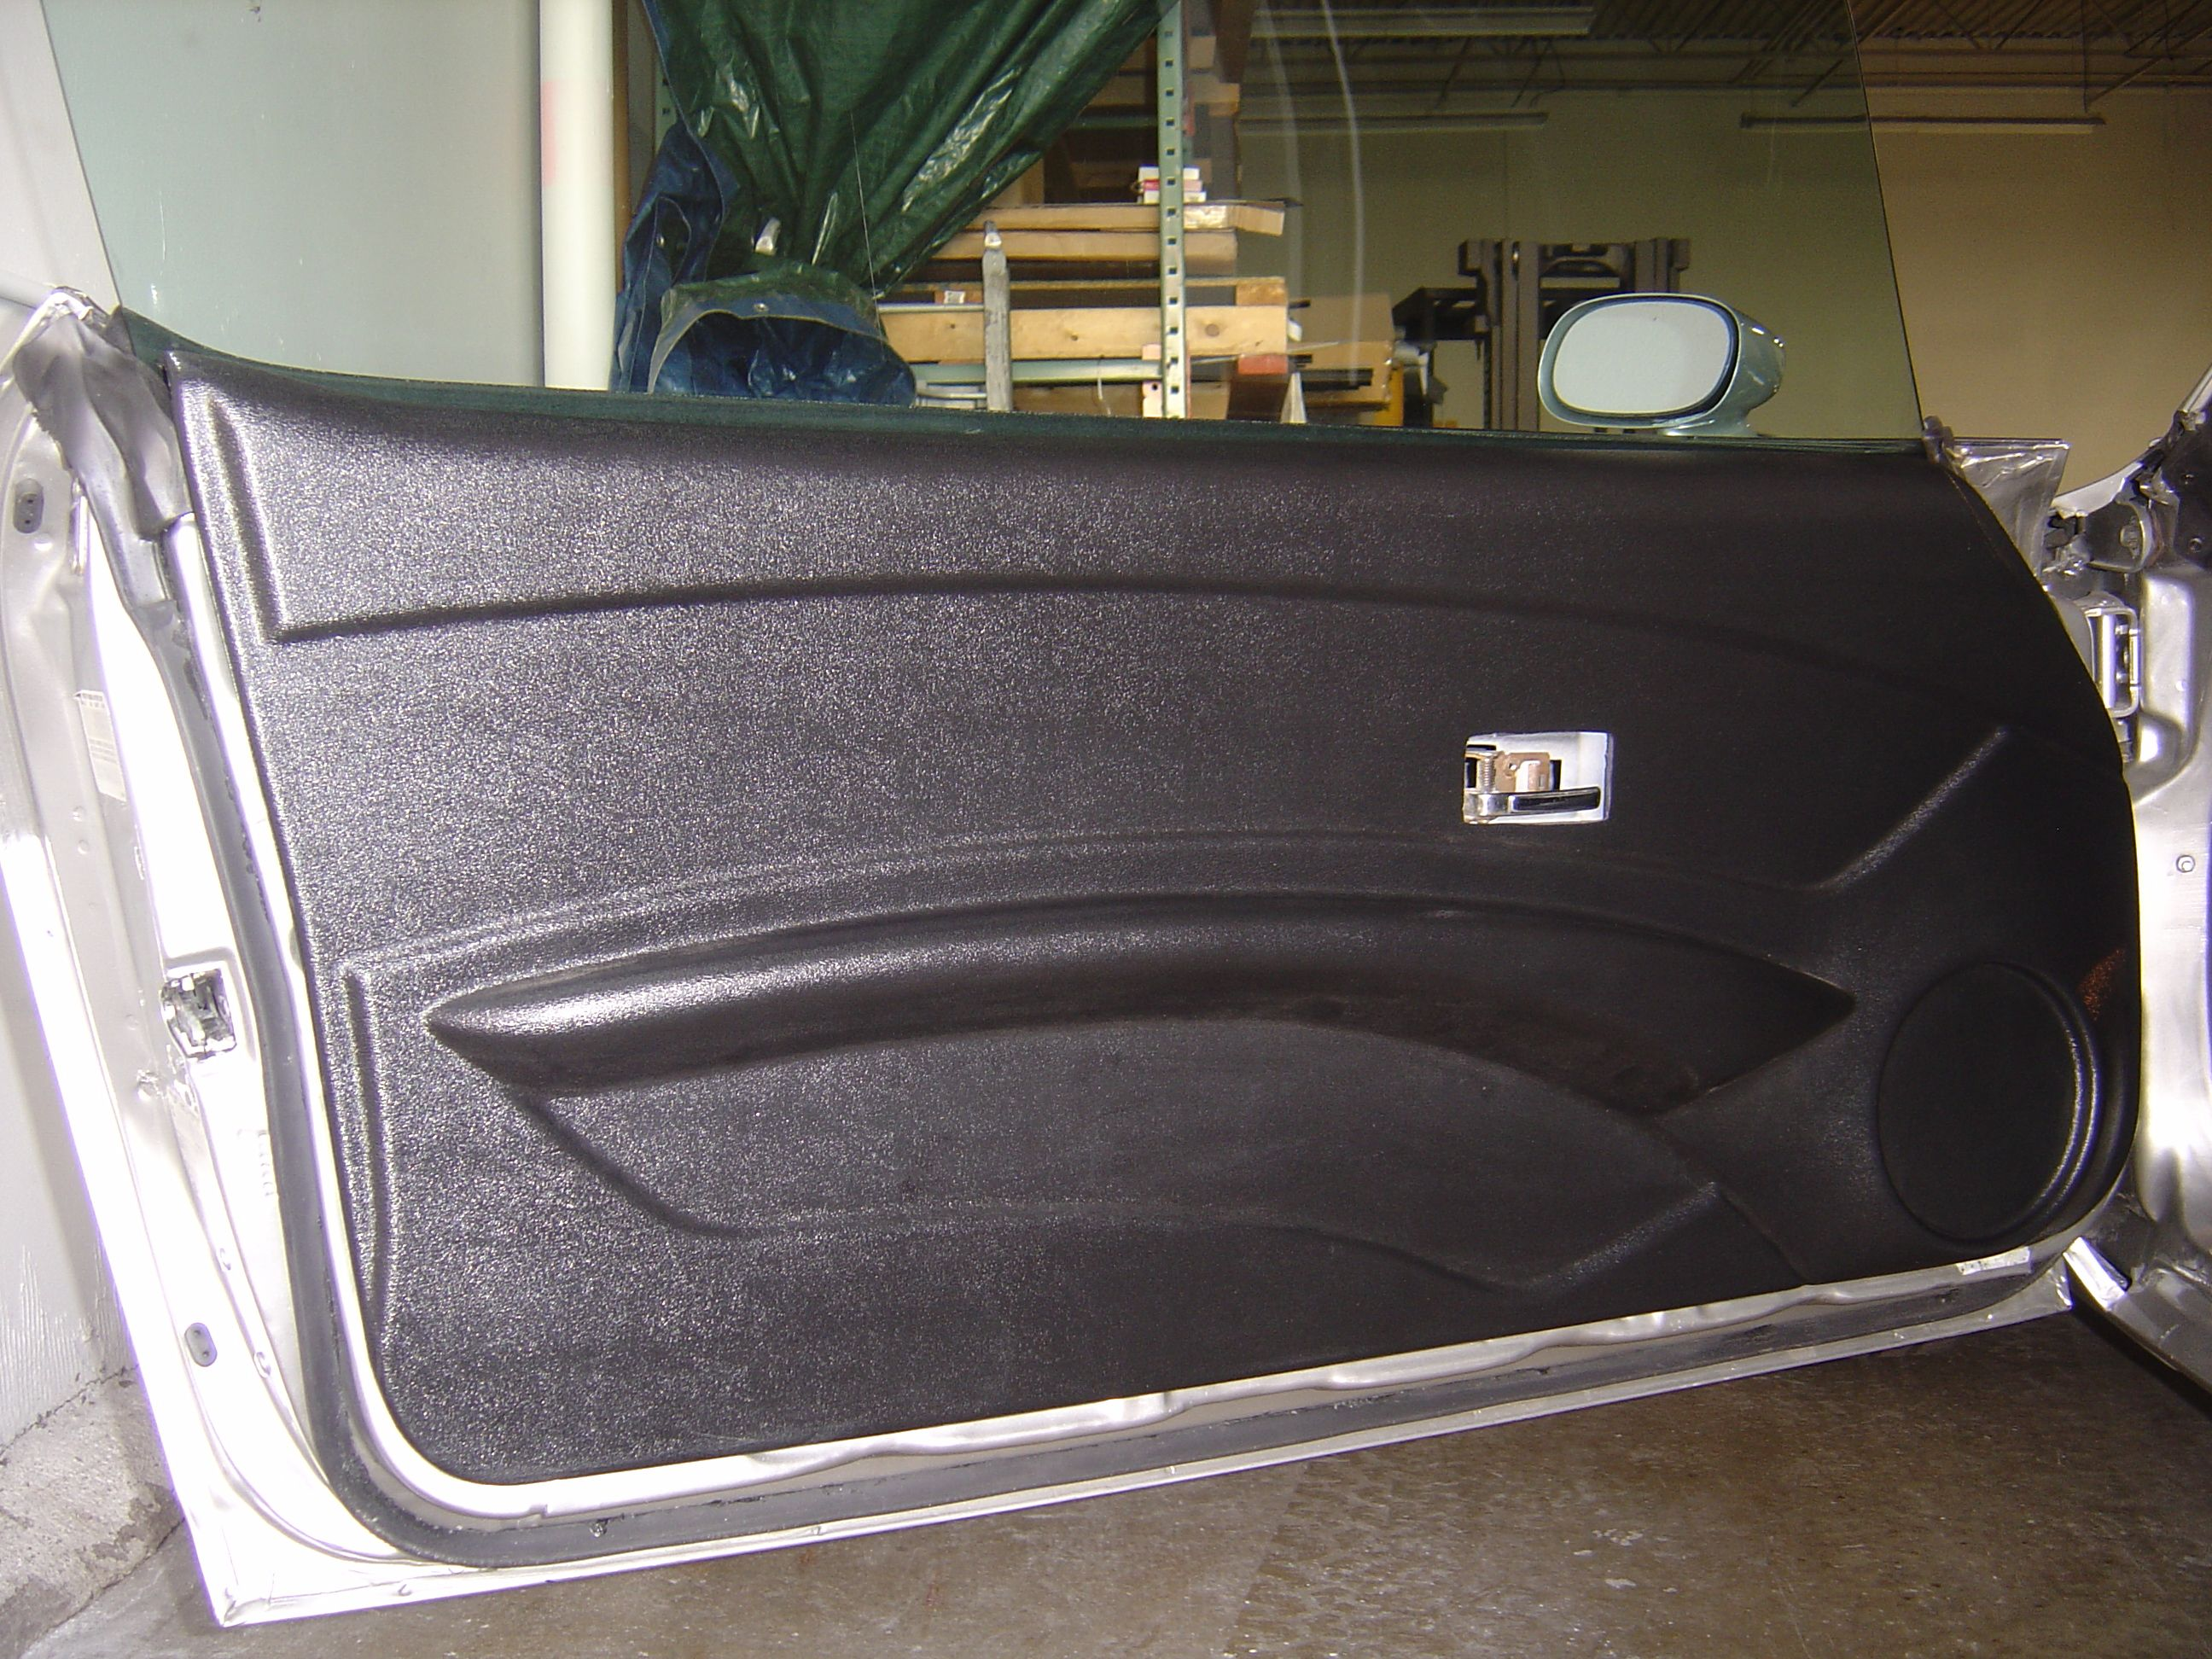 Custom Abs Camaro Interior Door Panels For 1970 1981 Camaro And Firebird Designed And Built By Geo Camaro Interior Modern Classic Interior Custom Car Interior